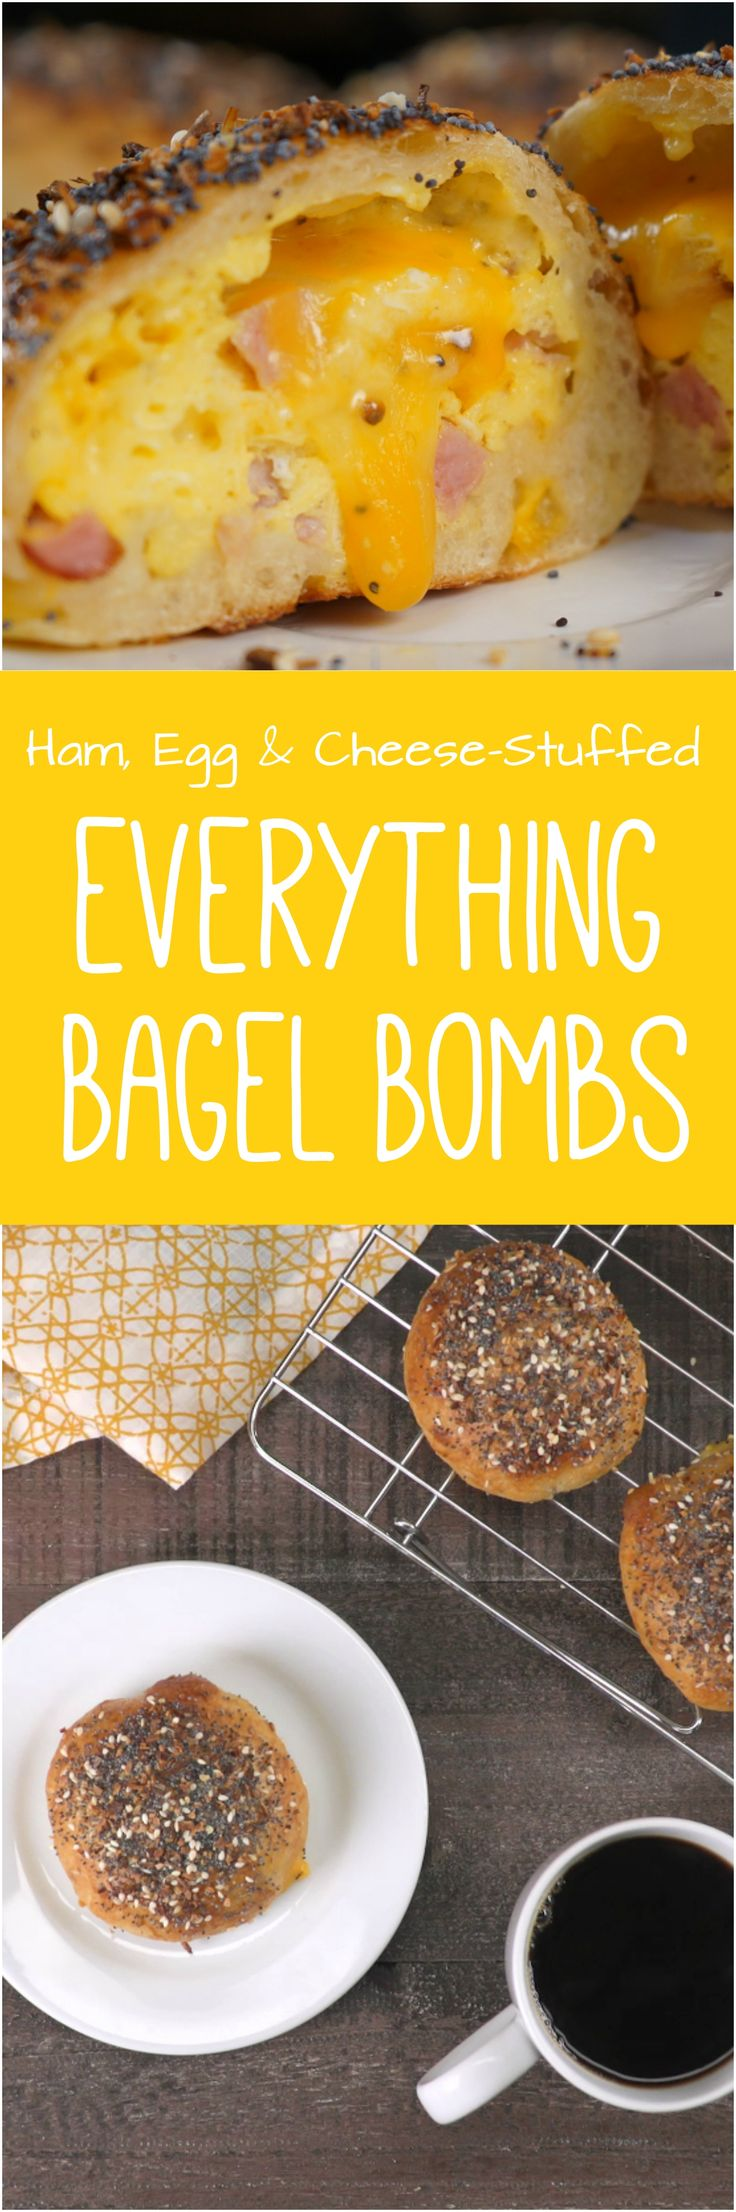 Not a morning person? These ham, egg, and cheese-stuffed bagel bombs will be your everything -- because you can freeze them for a hearty breakfast on-the-go.